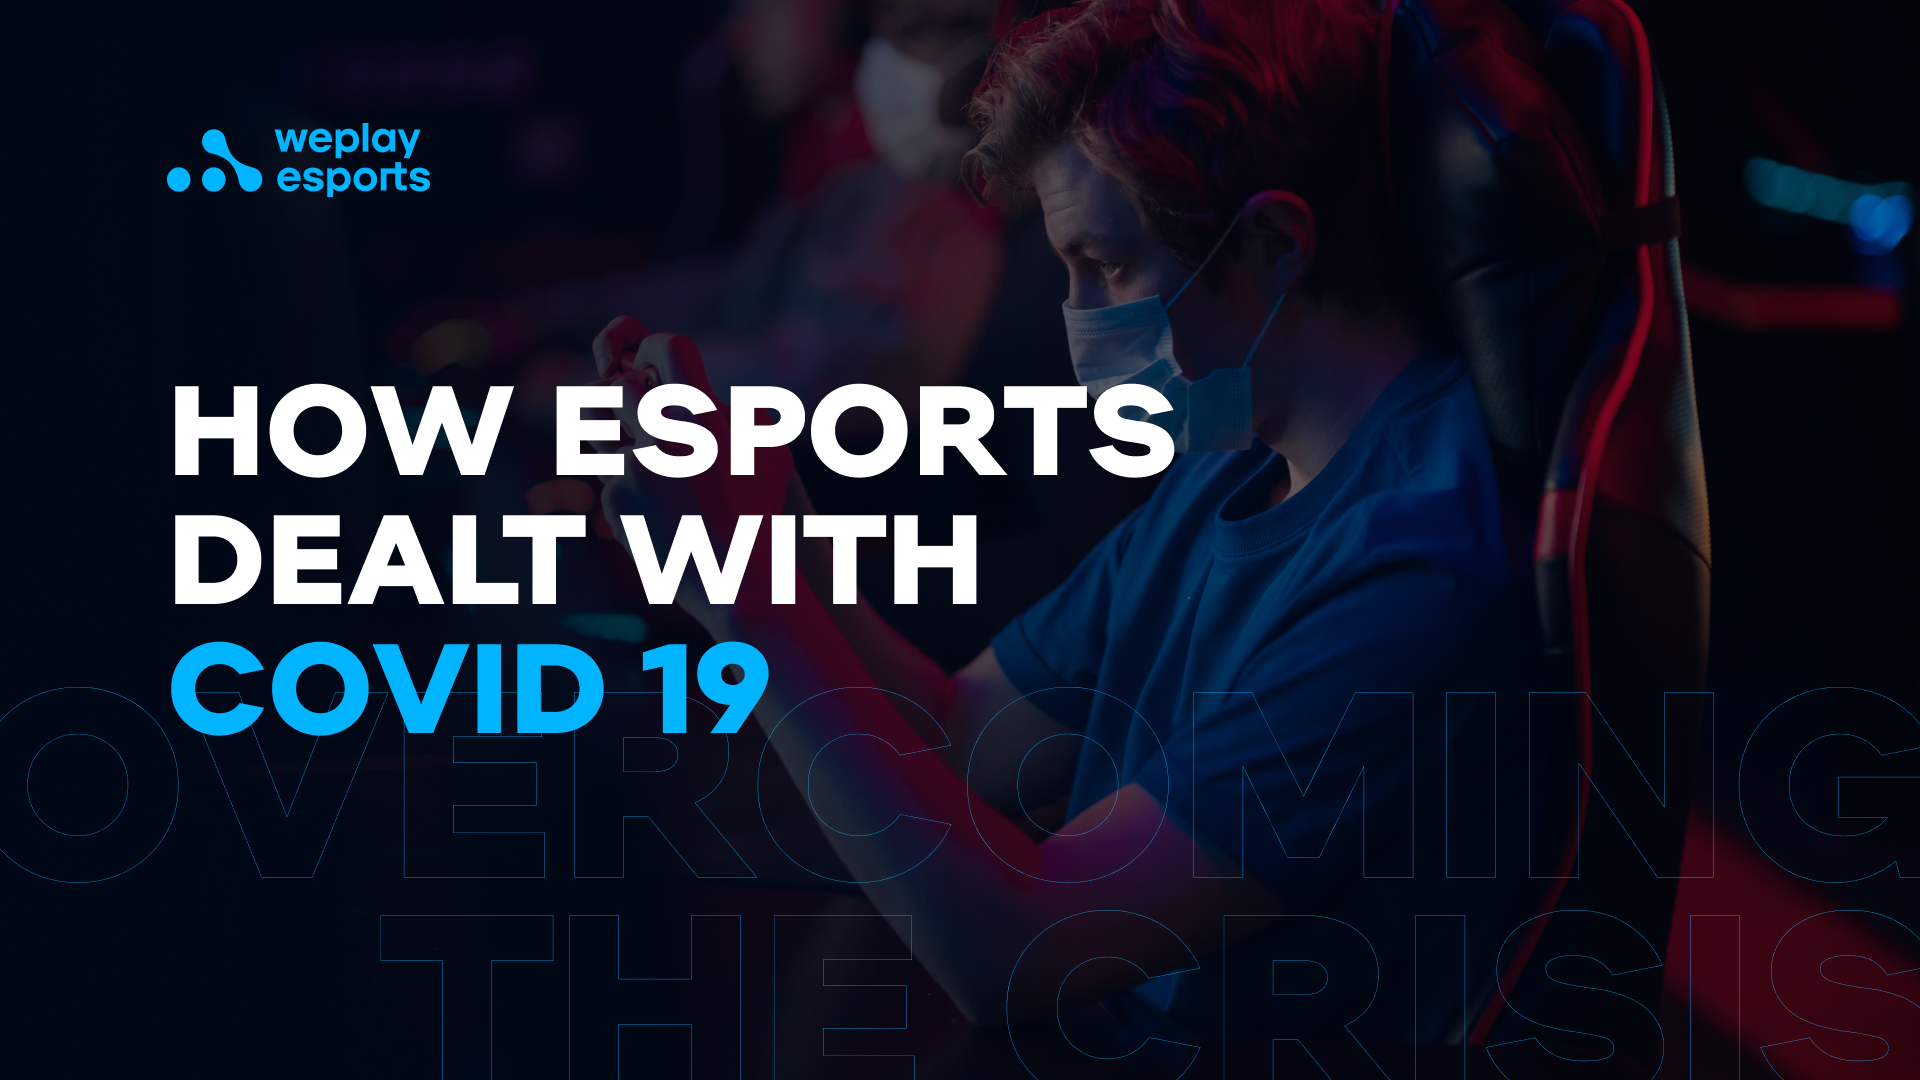 How esports dealt with Covid 19